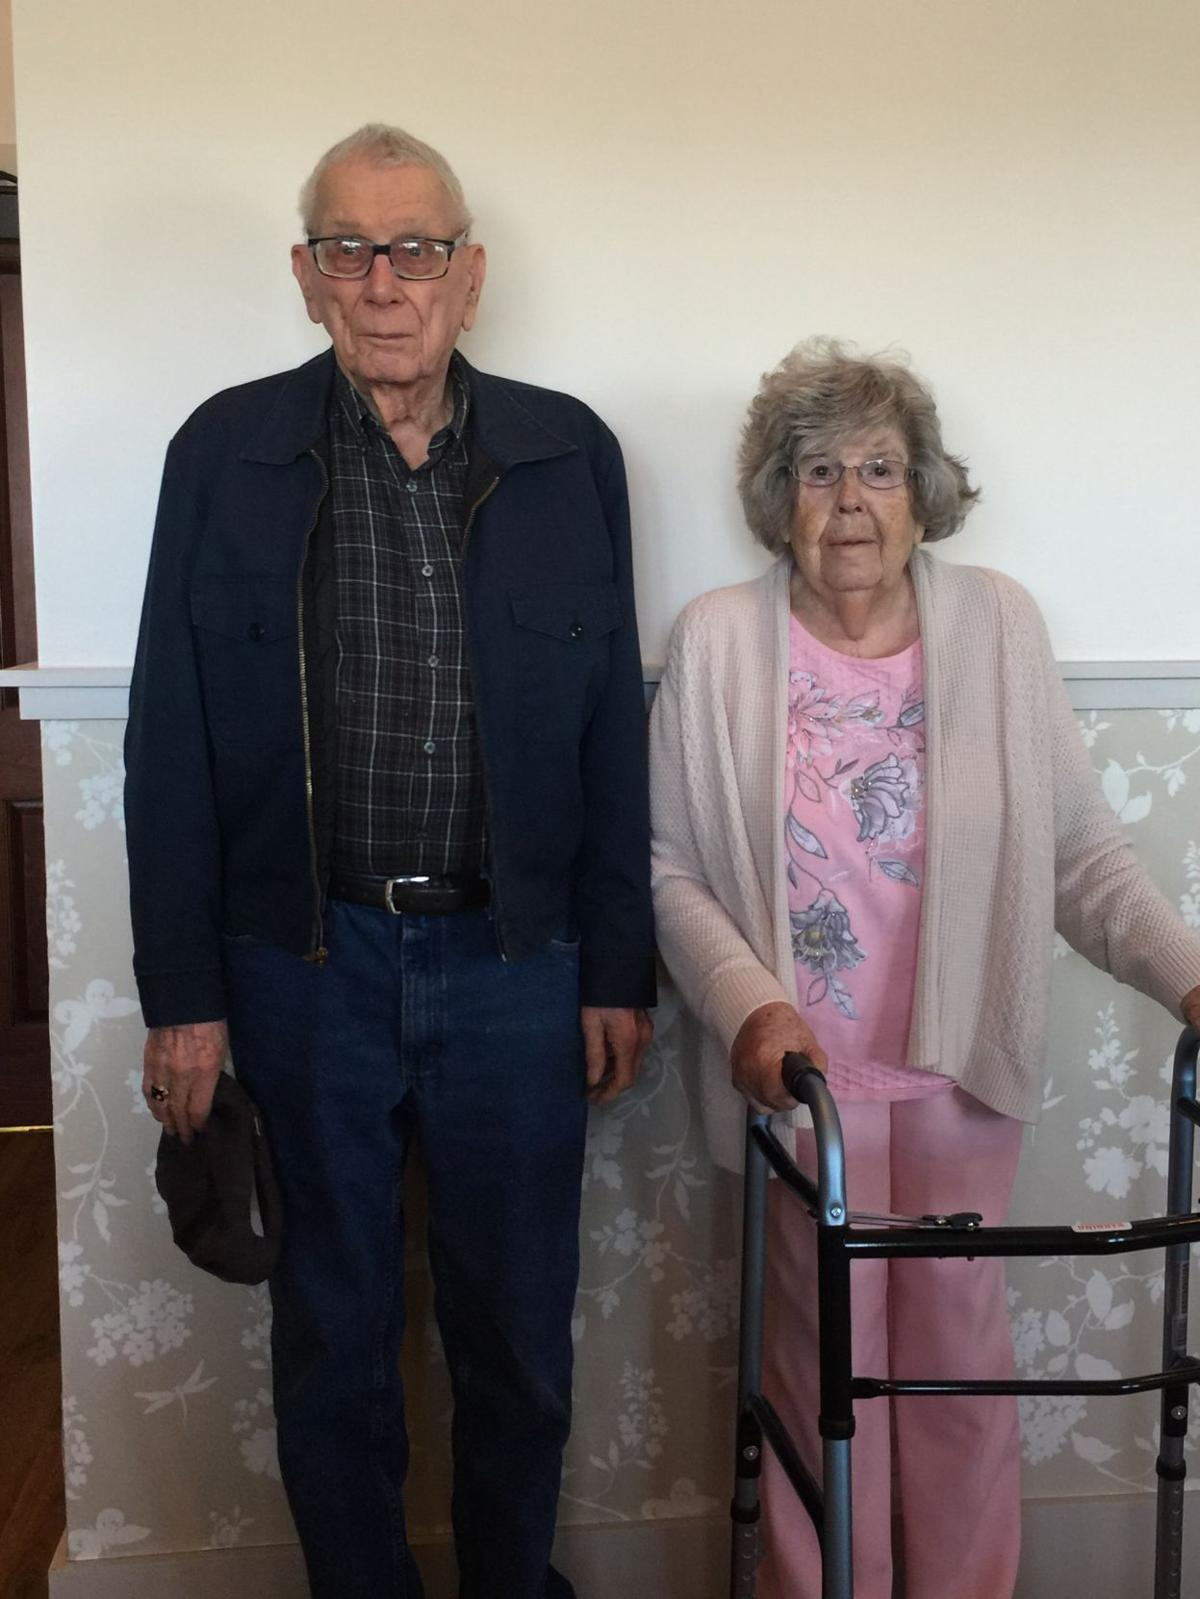 93rd birthdays and an anniversary